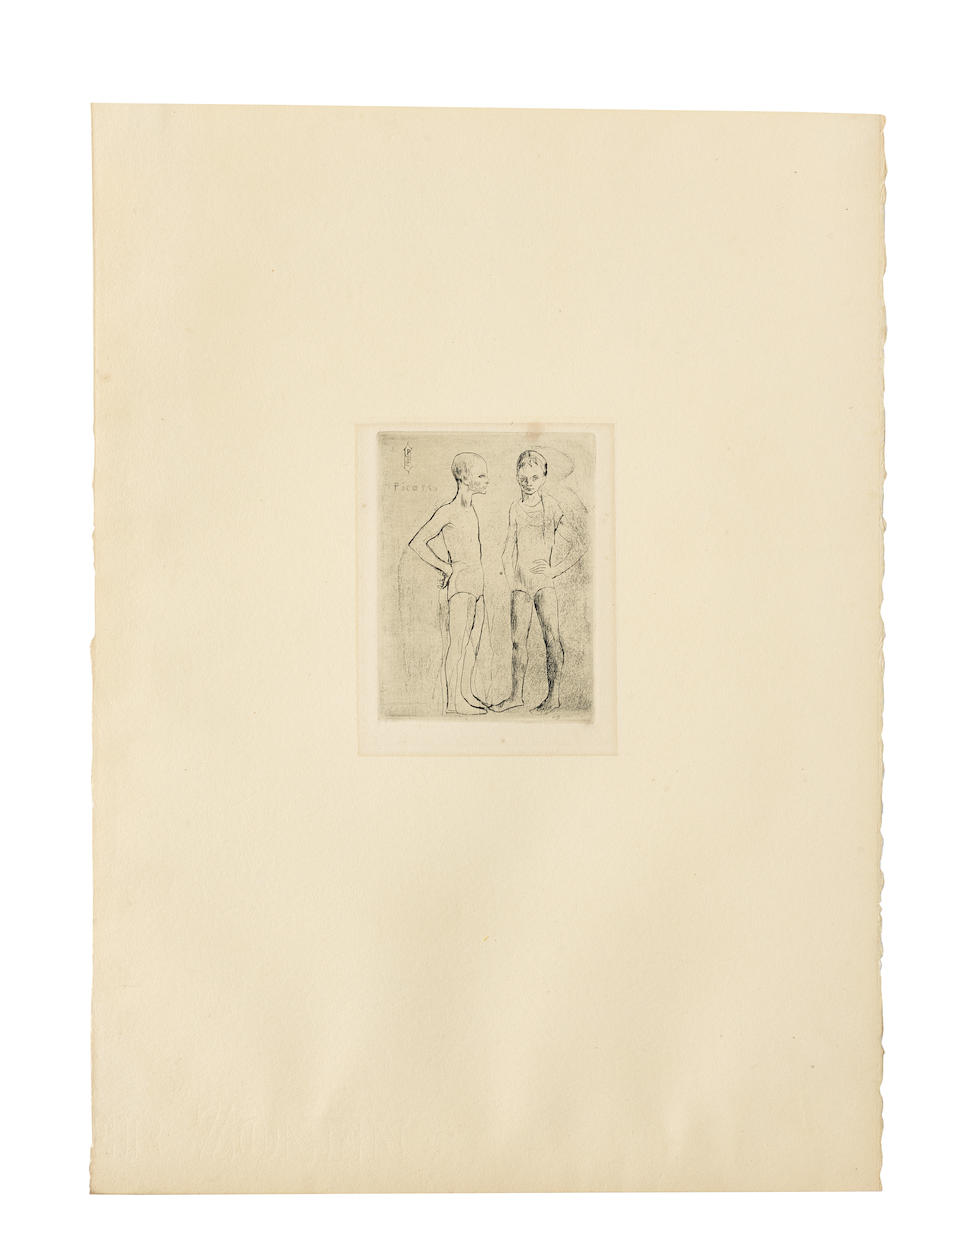 Pablo Picasso (Spanish, 1881-1973) La Suite des Saltimbanques  The rare complete suite of 15 etchings and drypoints, 1904-05, fine impressions from the edition of 250 on van Gelder Zonen wove paper, with the exception of Le Saltimbanque au repos (B. 10), one of 27 or 29 proofs on Japan laid paper and signed in red crayon, published by Ambroise Vollard and printed by Fort in 1913, Paris, all with wide margins or the full sheets, in good condition Largest sheet (Repas Frugal) 650 x 505mm. (25 1/2 x 19 7/8in.)